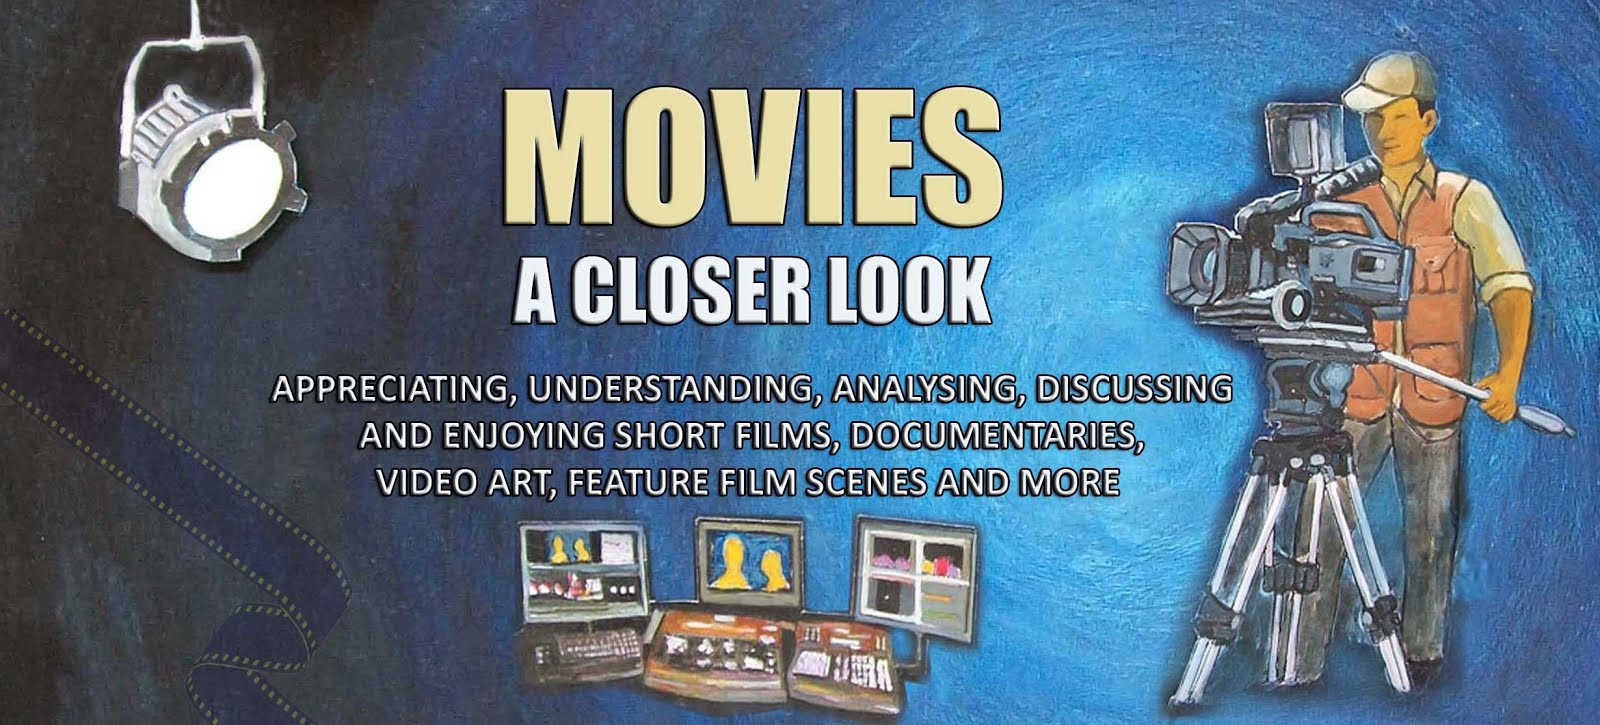 Movies - A Closer Look